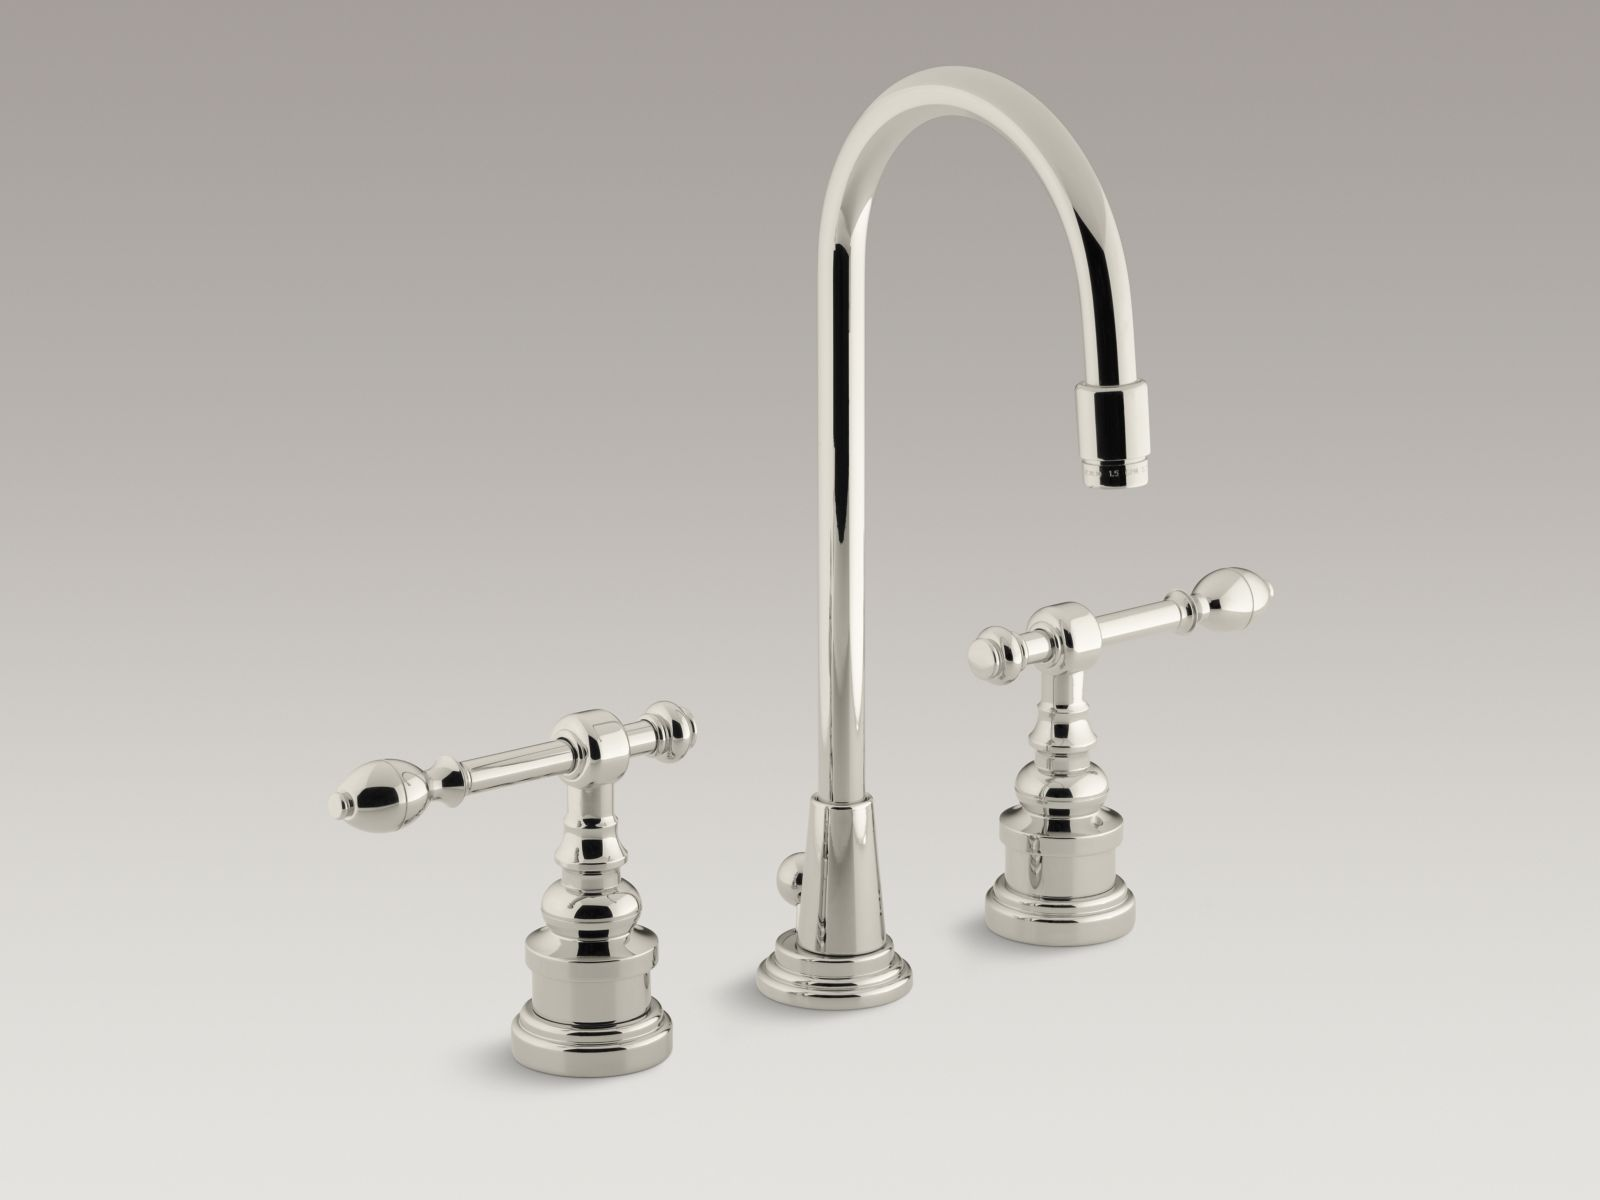 Kohler K-6813-4-SN IV Georges Brass Widespread Bathrom Sink Faucet with High Country Spout and Lever Handles Vibrant Polished Nickel